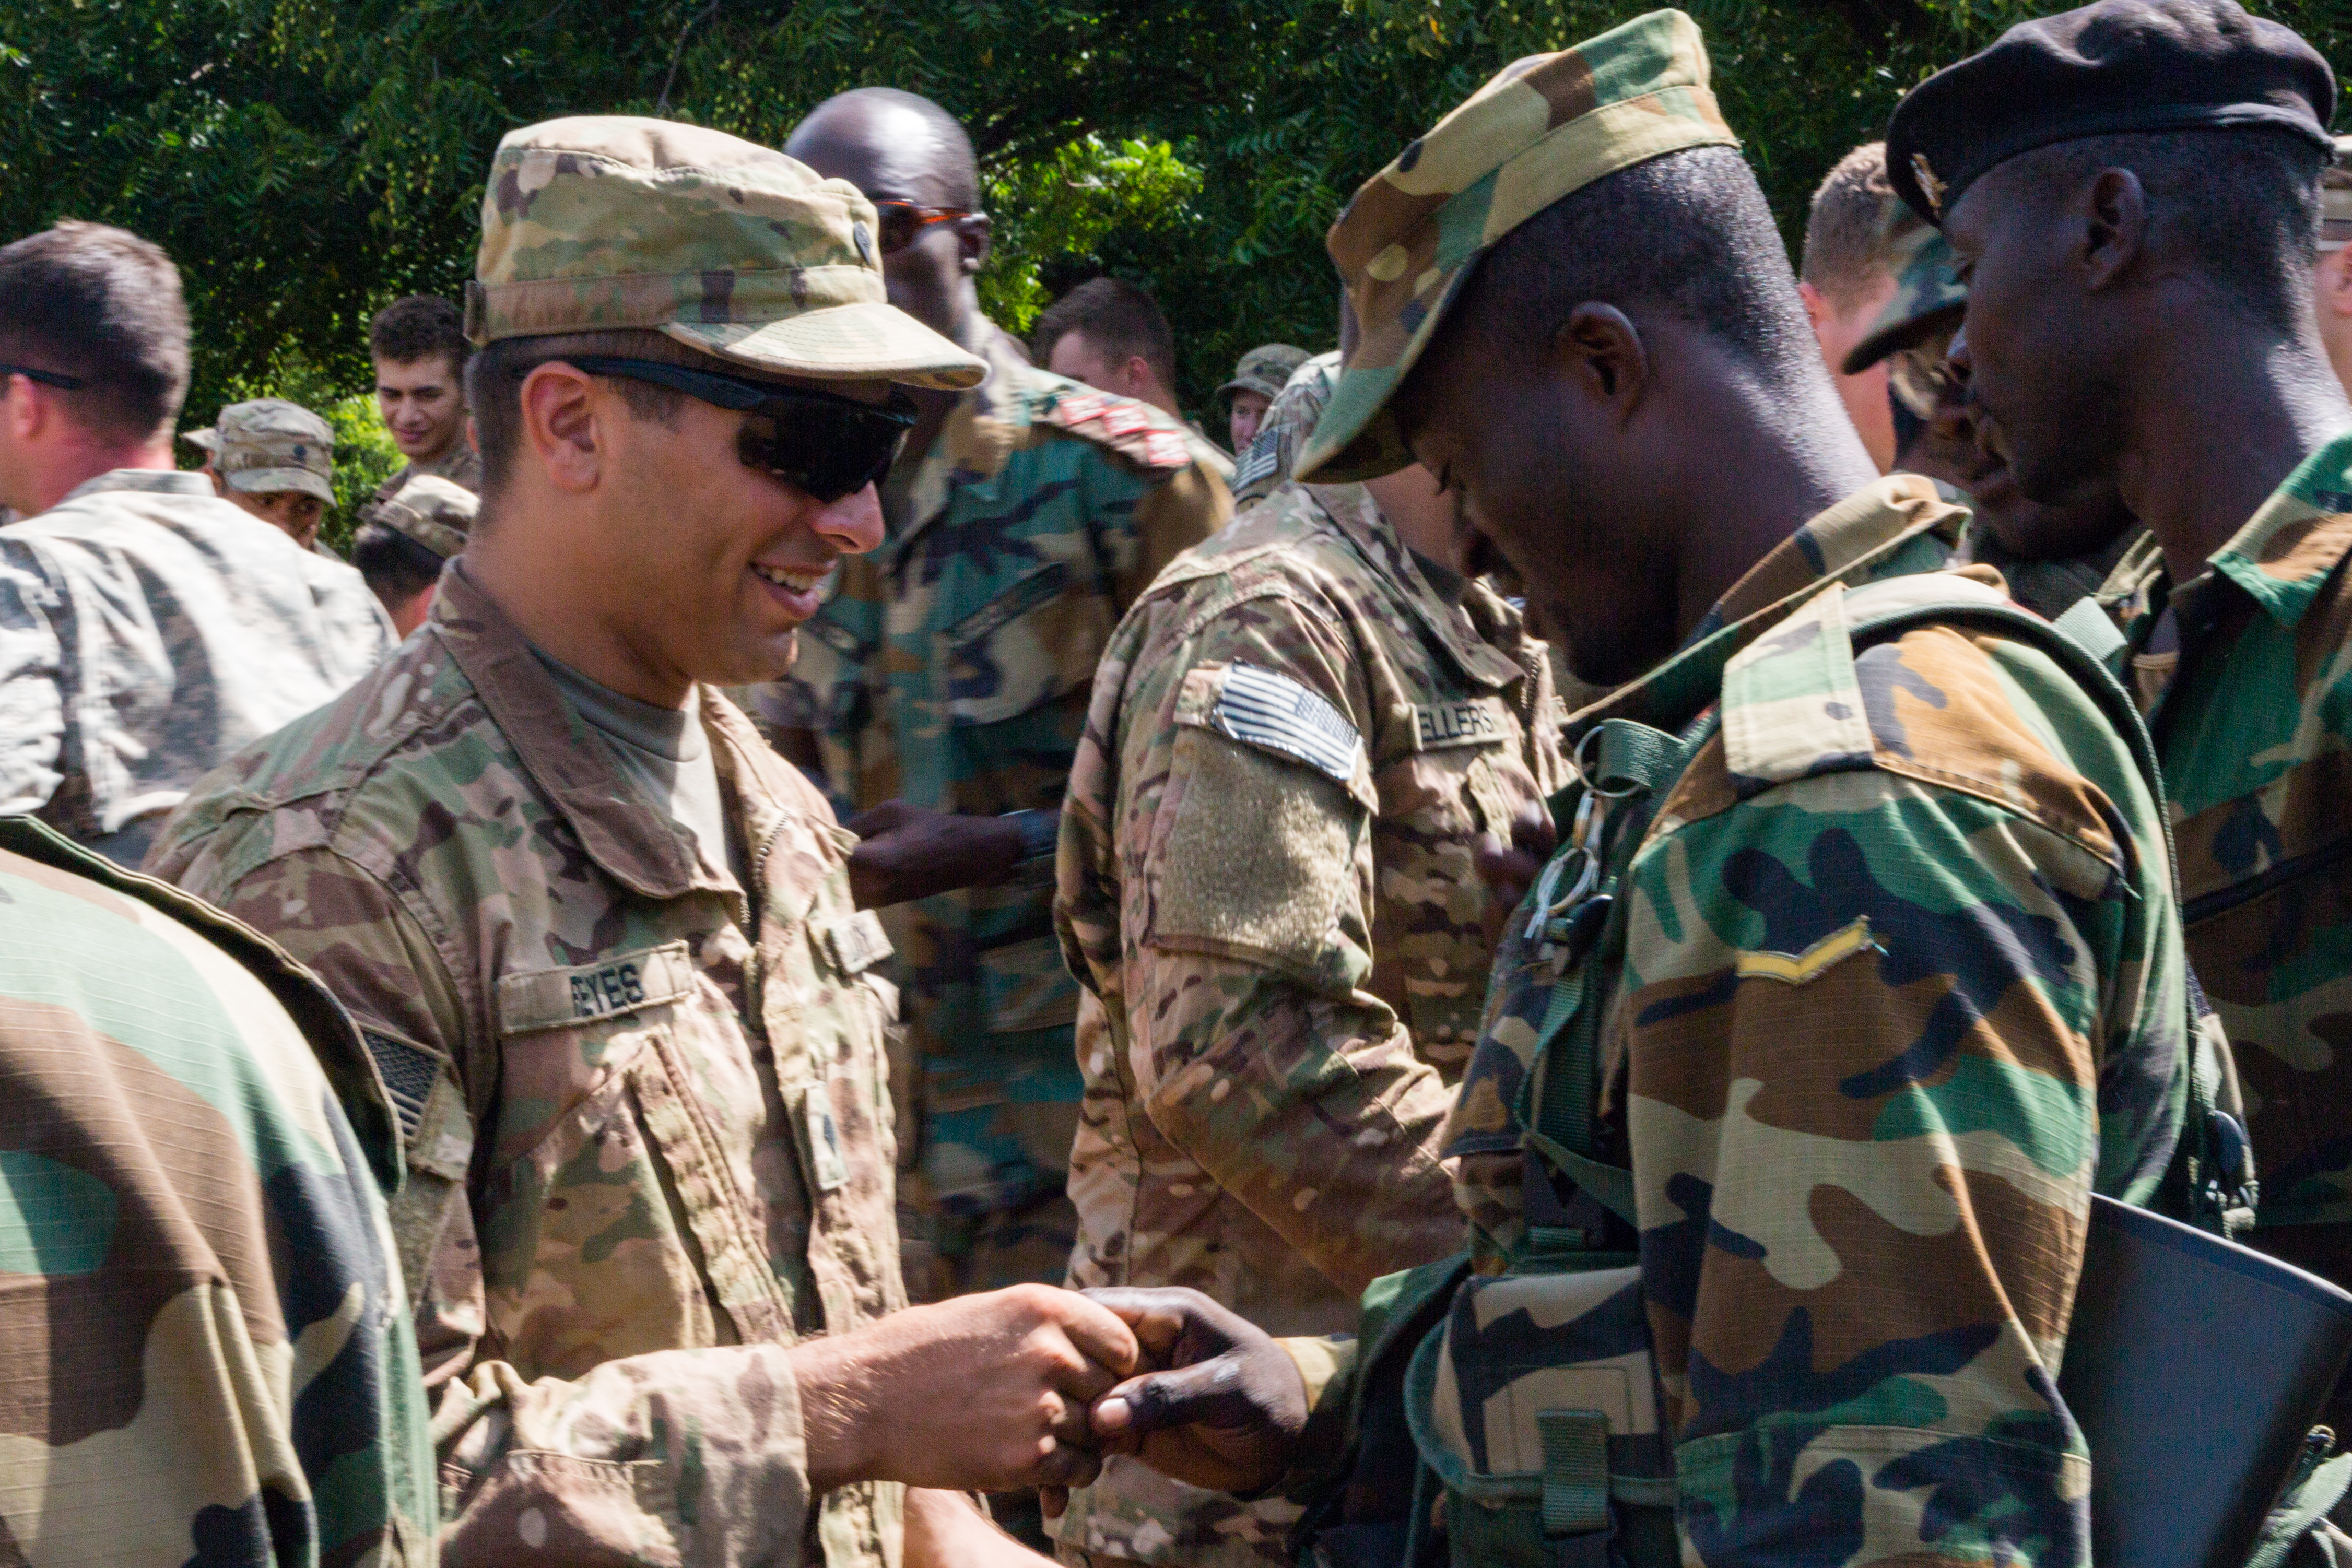 U.S. Soldiers assigned to the 1st Battalion, 506th Infantry Regiment, 1st Brigade Combat Team, 101st Airborne Division give their unit patches to Ghana Armed Forces soldiers during United Accord 2017 at Bundase Training Camp, Bundase, Ghana, May 29, 2017. United Accord (formerly Western Accord) 2017 is an annual, combined, joint military exercise that promotes regional relationships, increases capacity, trains U.S. and Western African forces, and encourages cross training and interoperability. (U.S. Army photo by Spc. Victor Perez Vargas/Released)